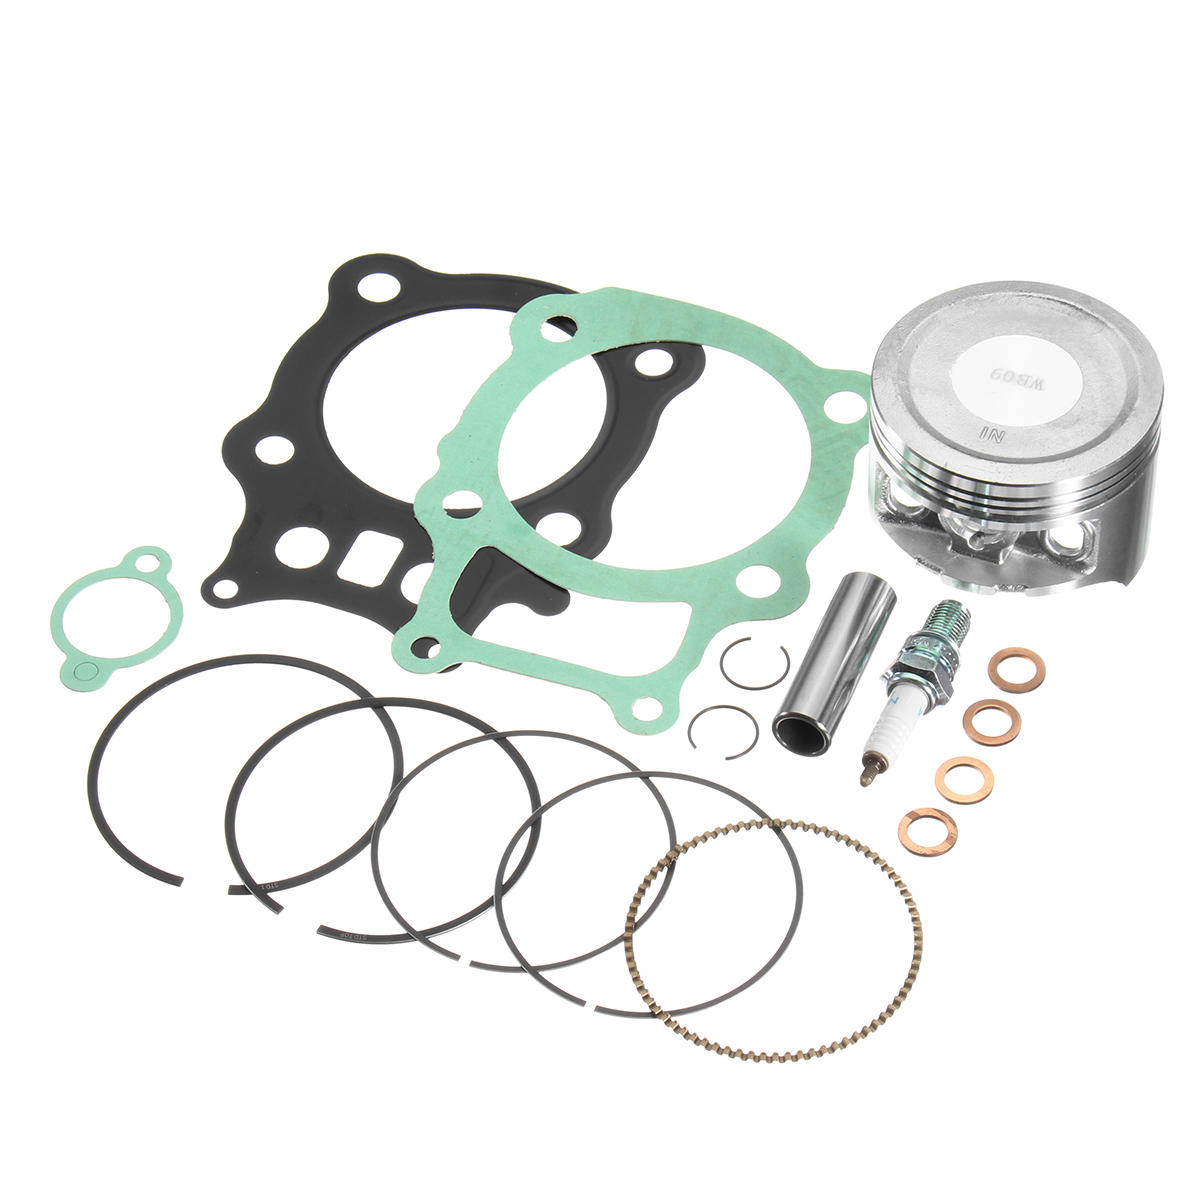 Honda Rancher Trx350 TRX 350 Piston Rings Gasket Kit Set Spark Plug 2000-2006